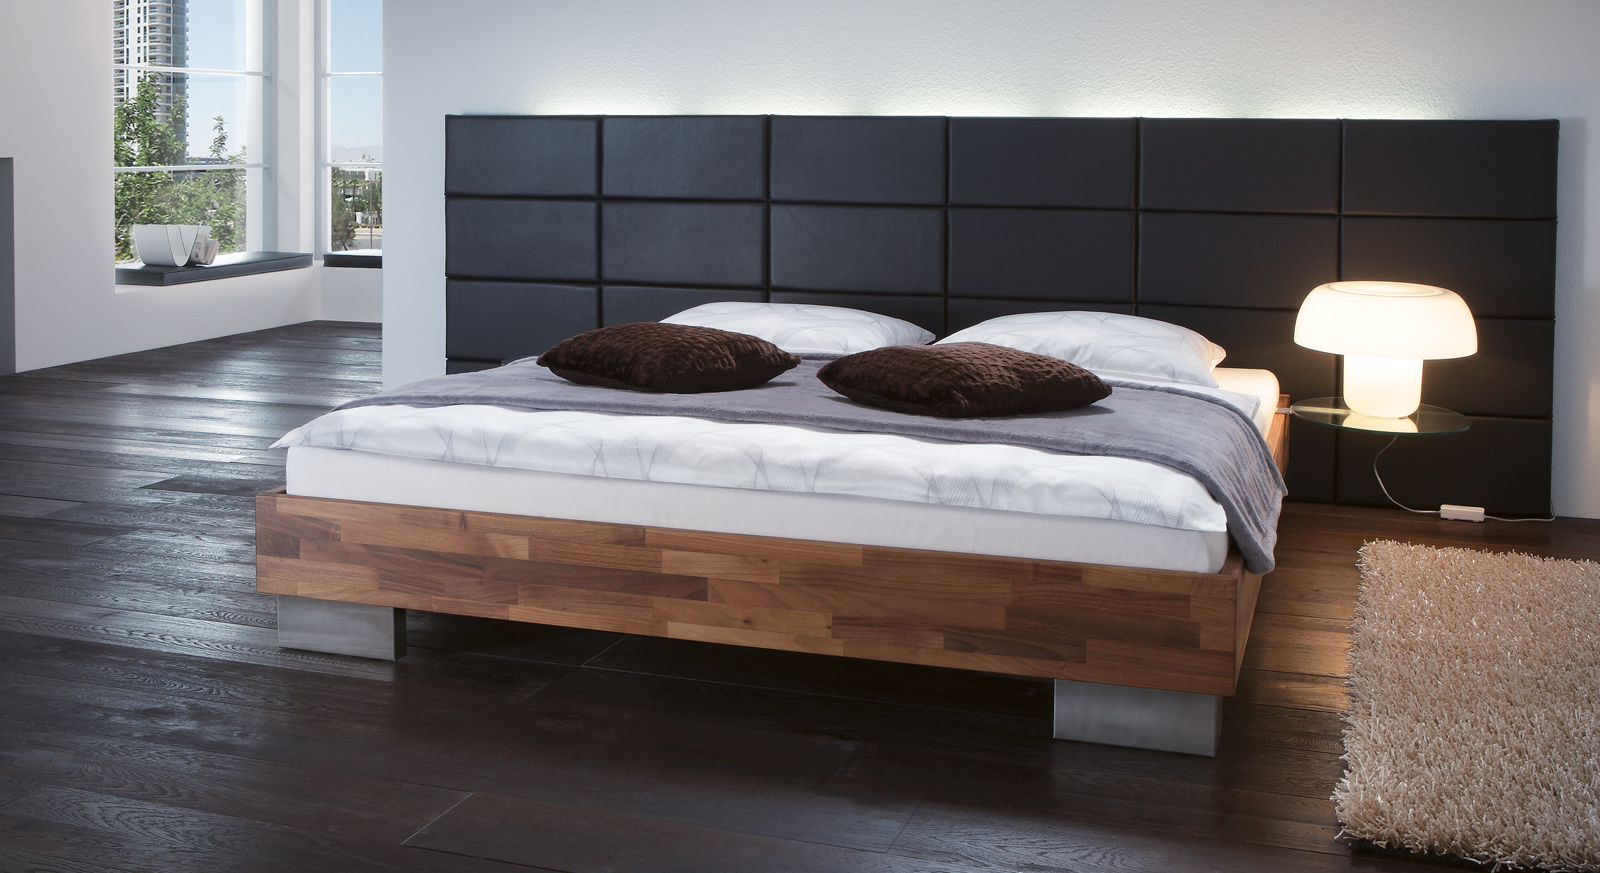 boxspring bett mit nachttisch boxspring bett wei mit. Black Bedroom Furniture Sets. Home Design Ideas